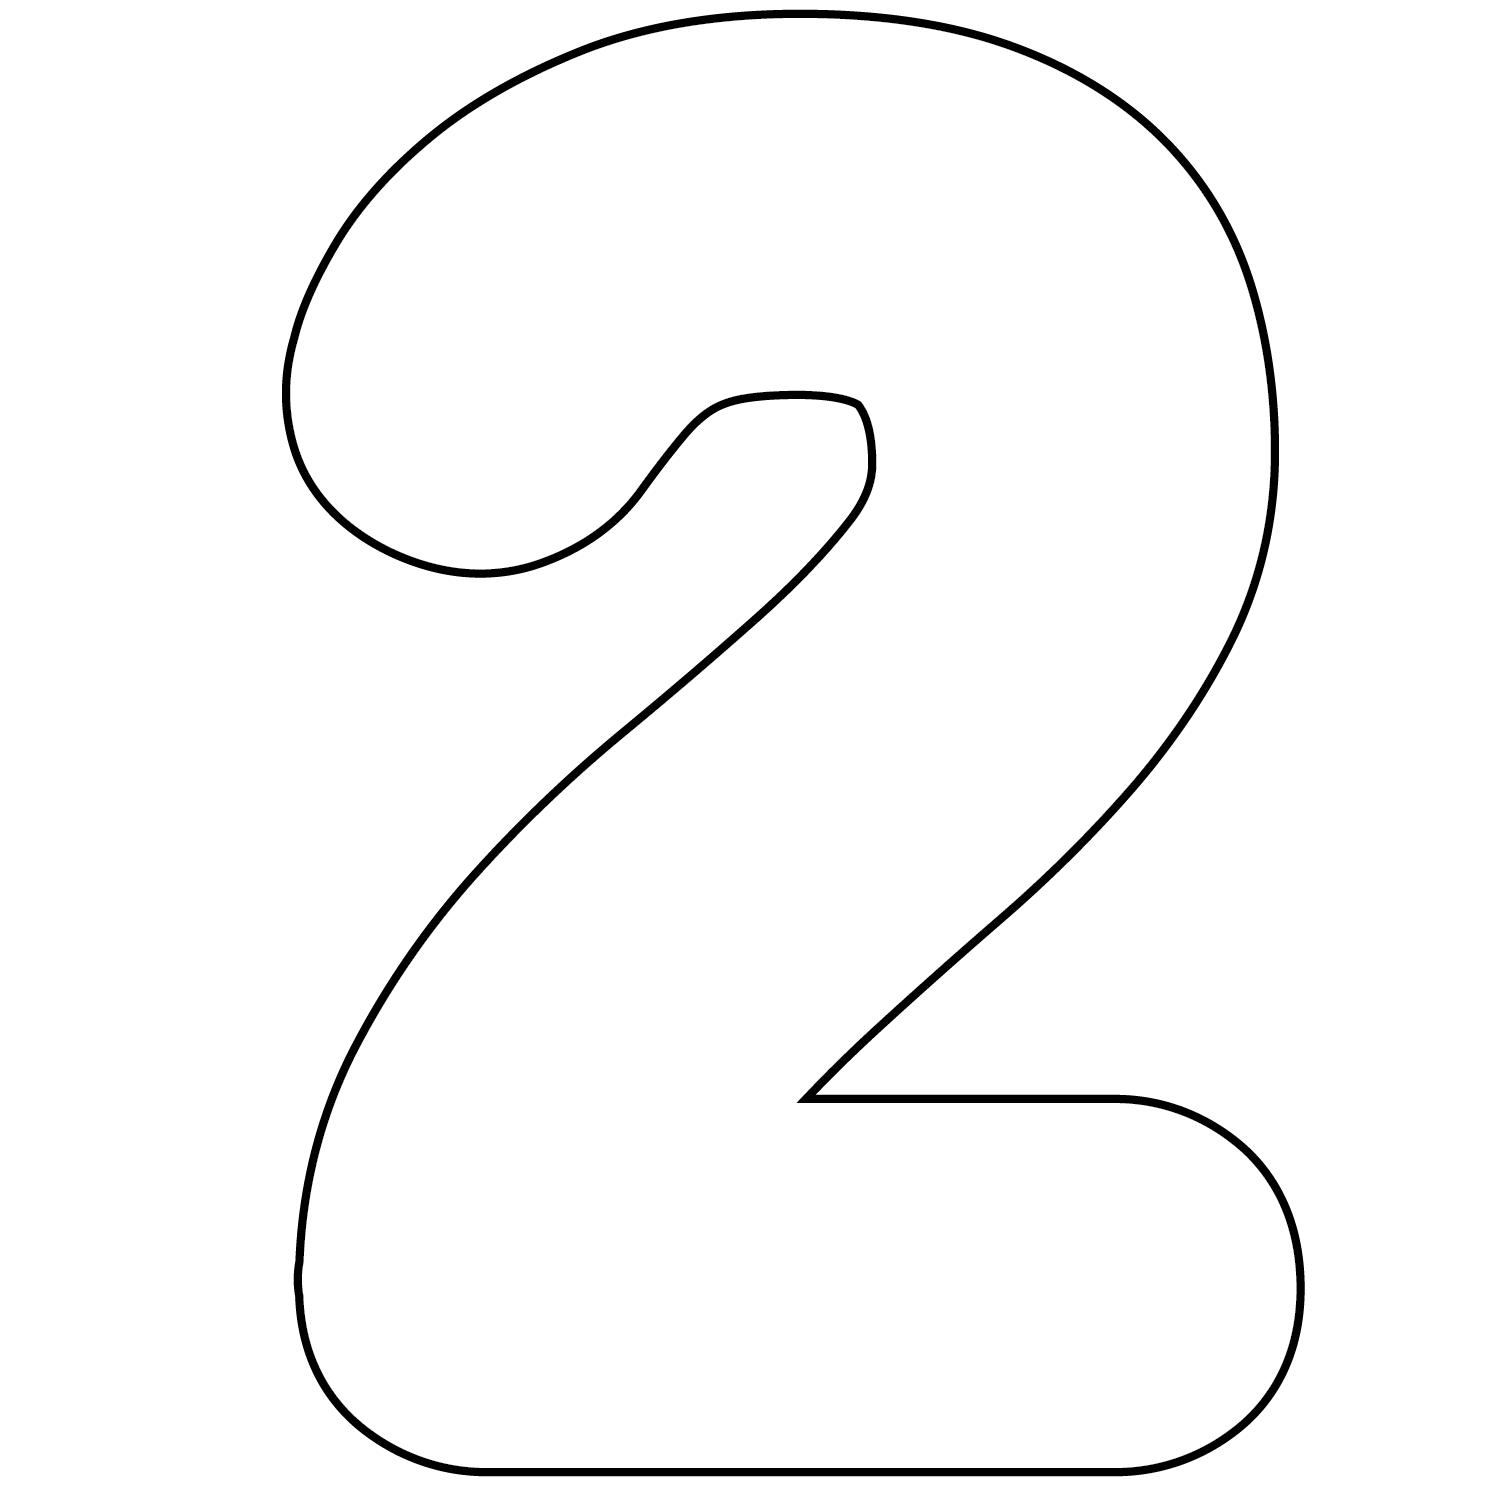 collection of number. 2 clipart black and white